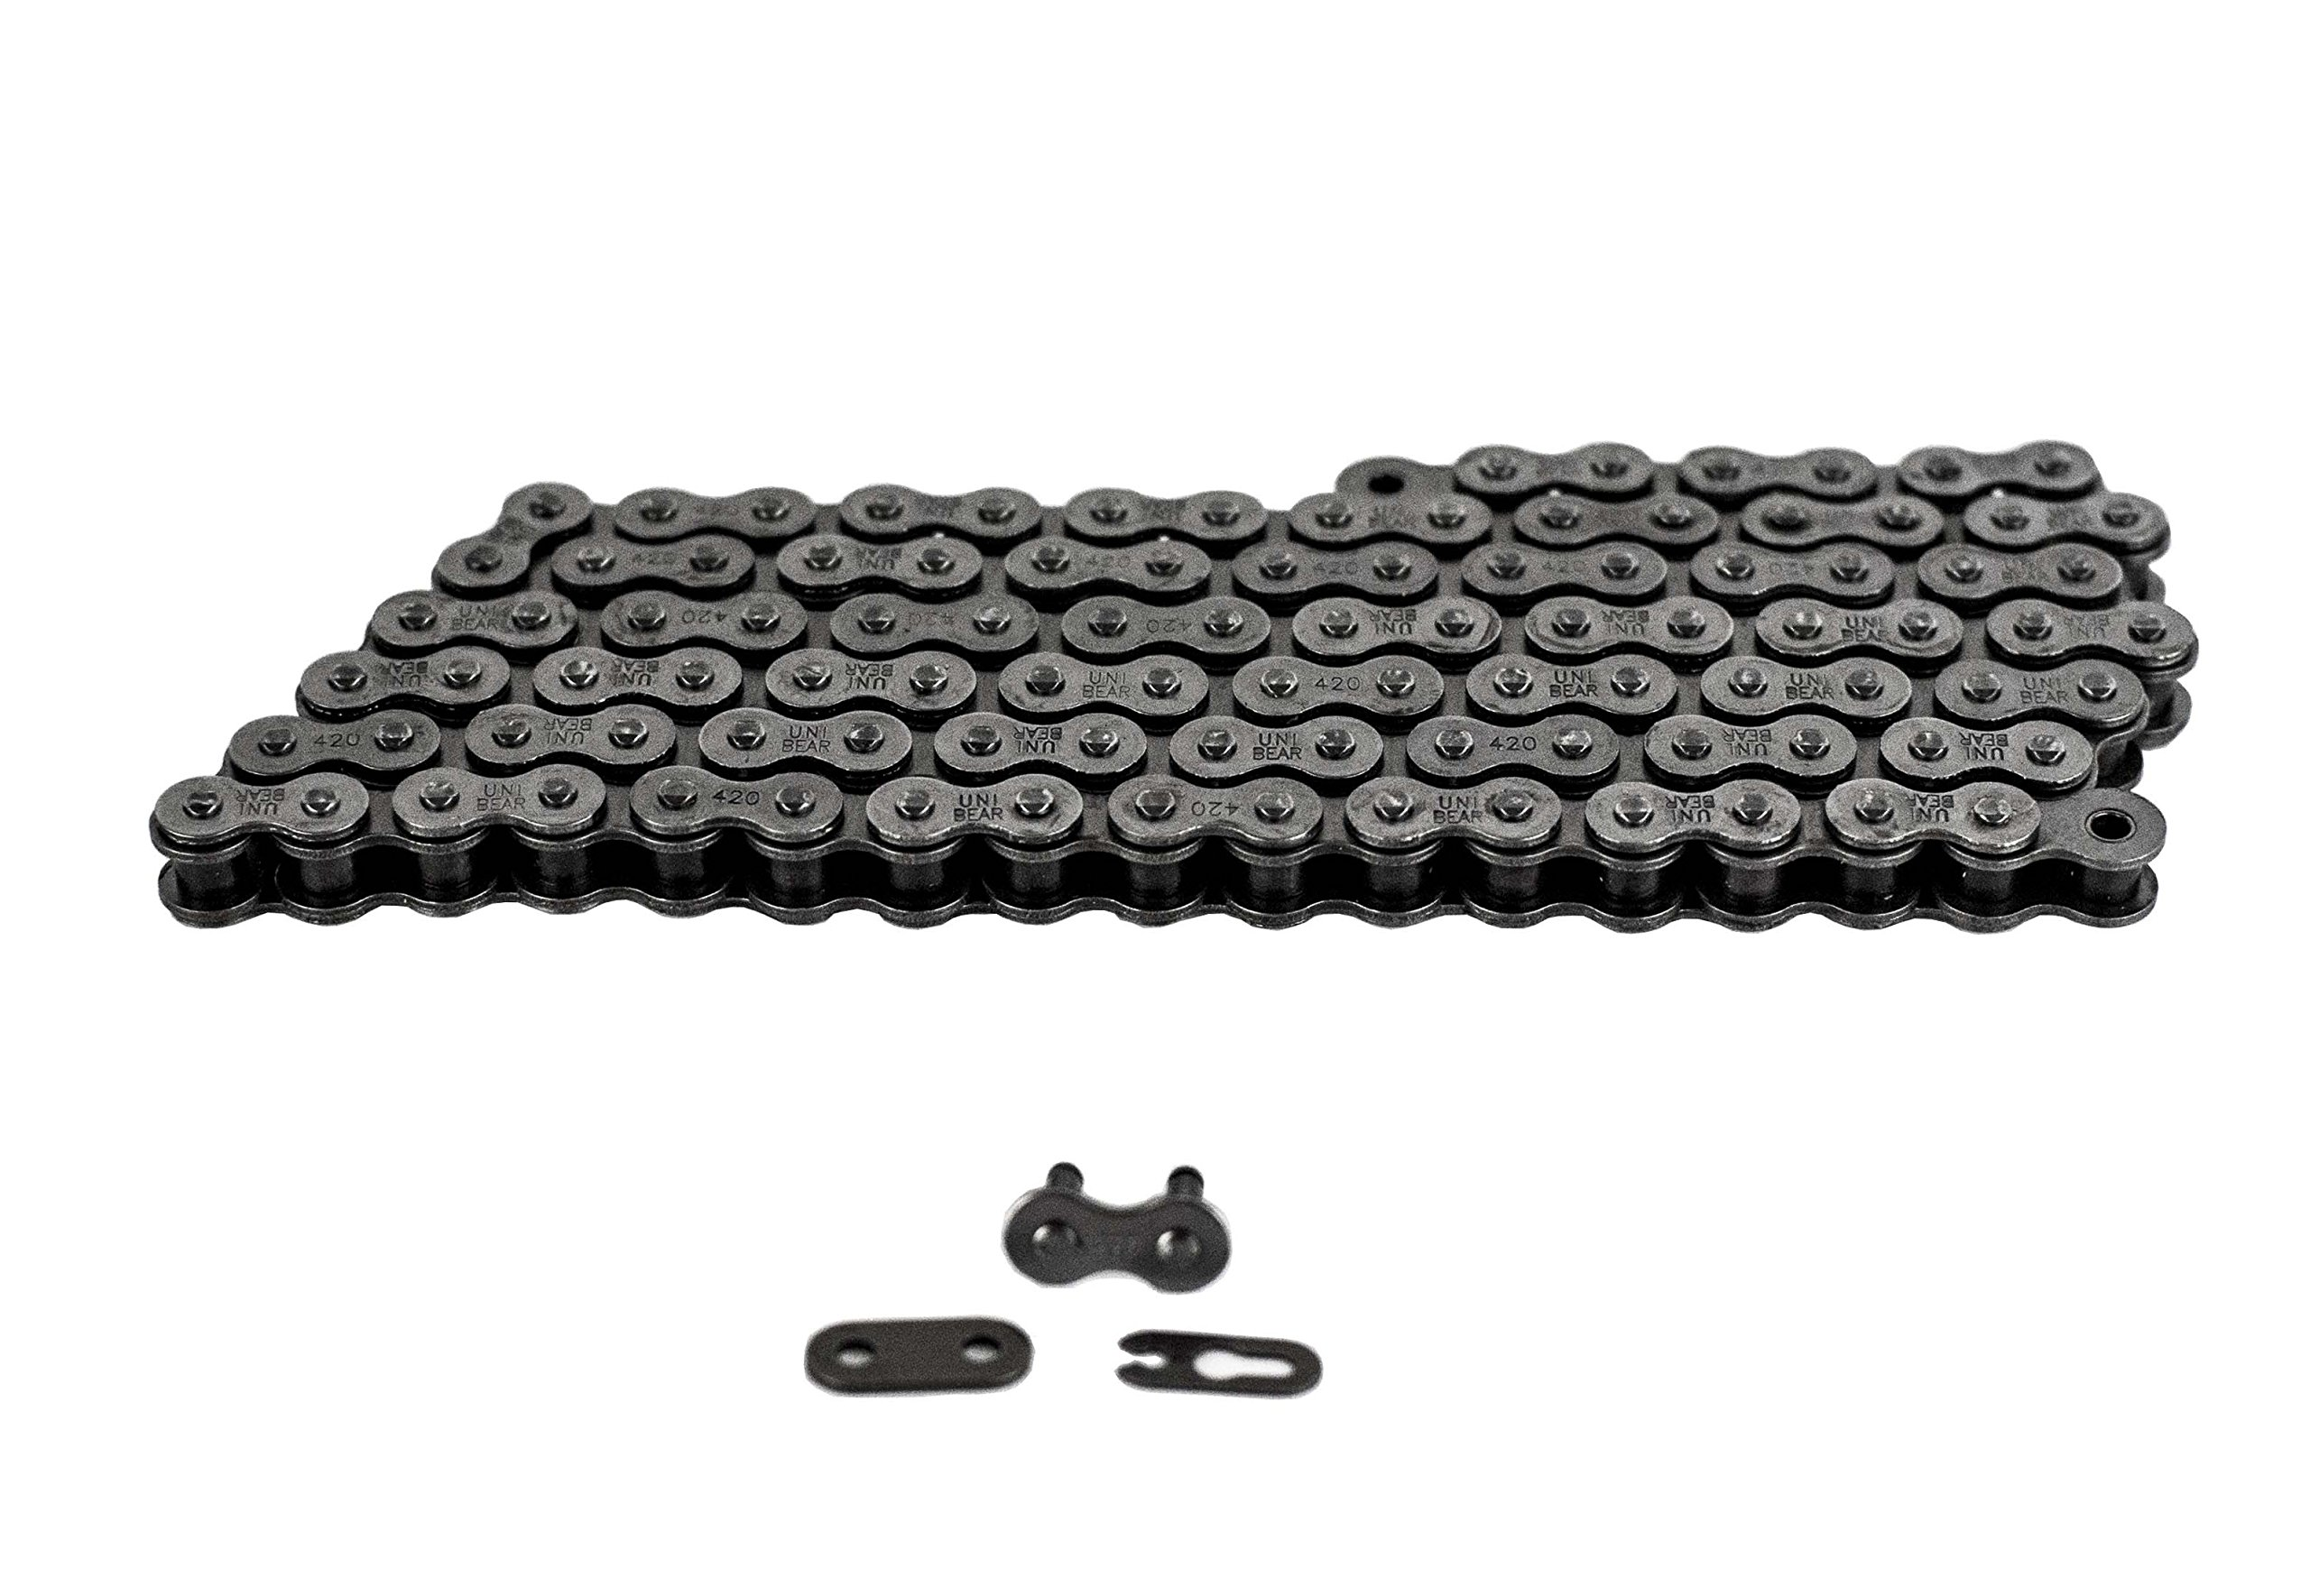 420 Motorcycle Chain 128-Link with 1 Connecting Link Natural, Go Kart, Mini Bike